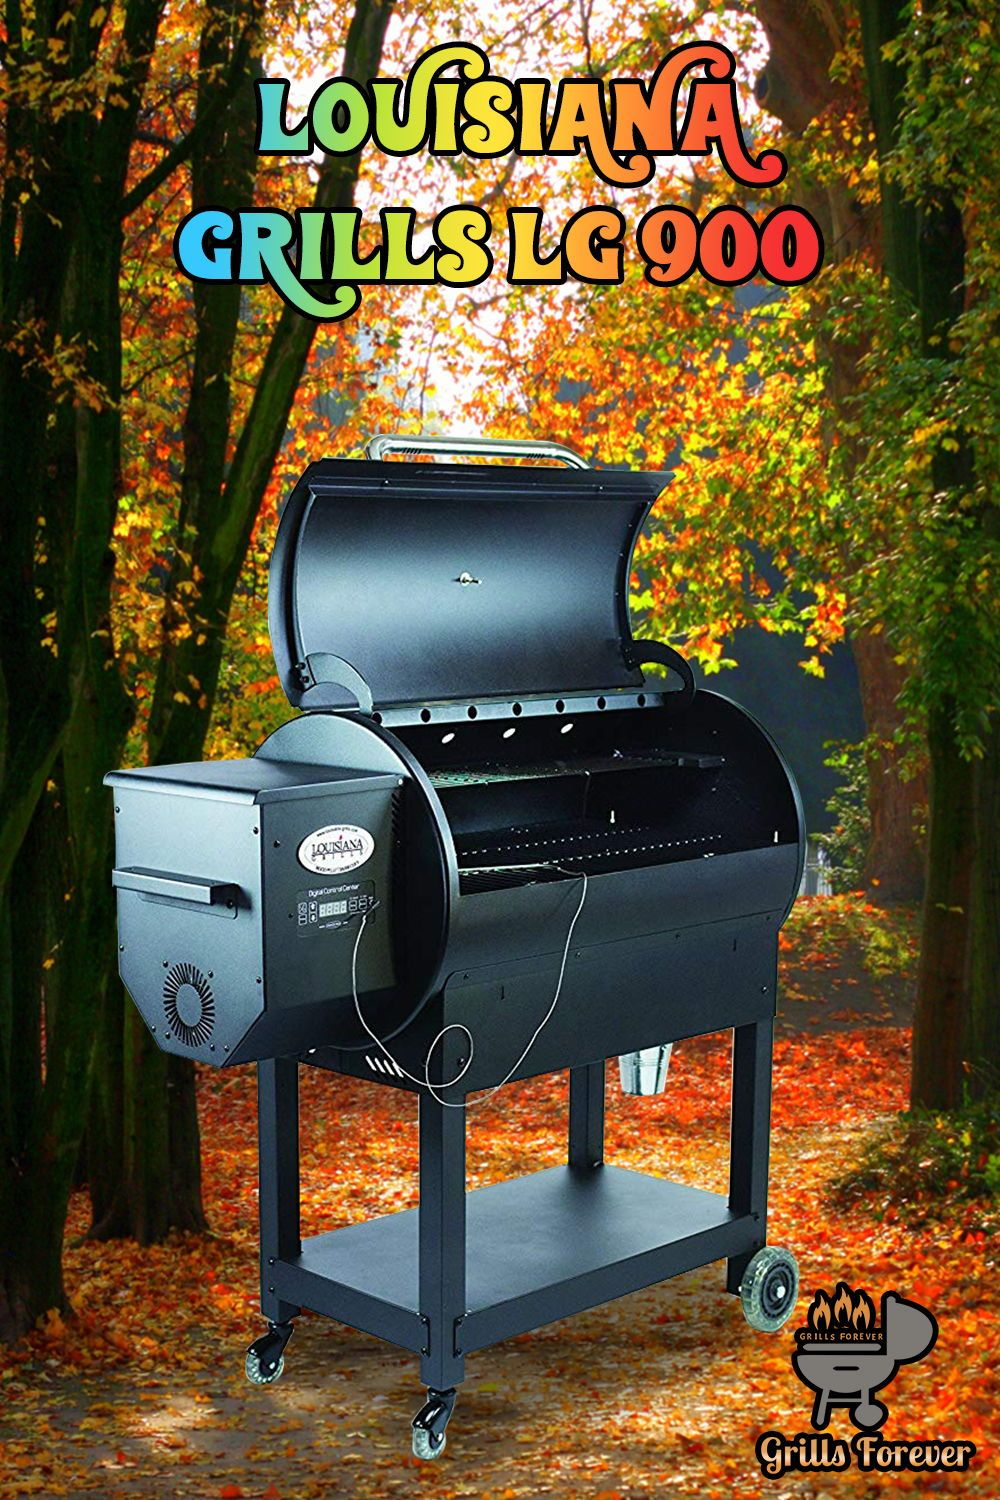 Louisiana Grills LG 900 Review   Top Grilling Brands   Grilling